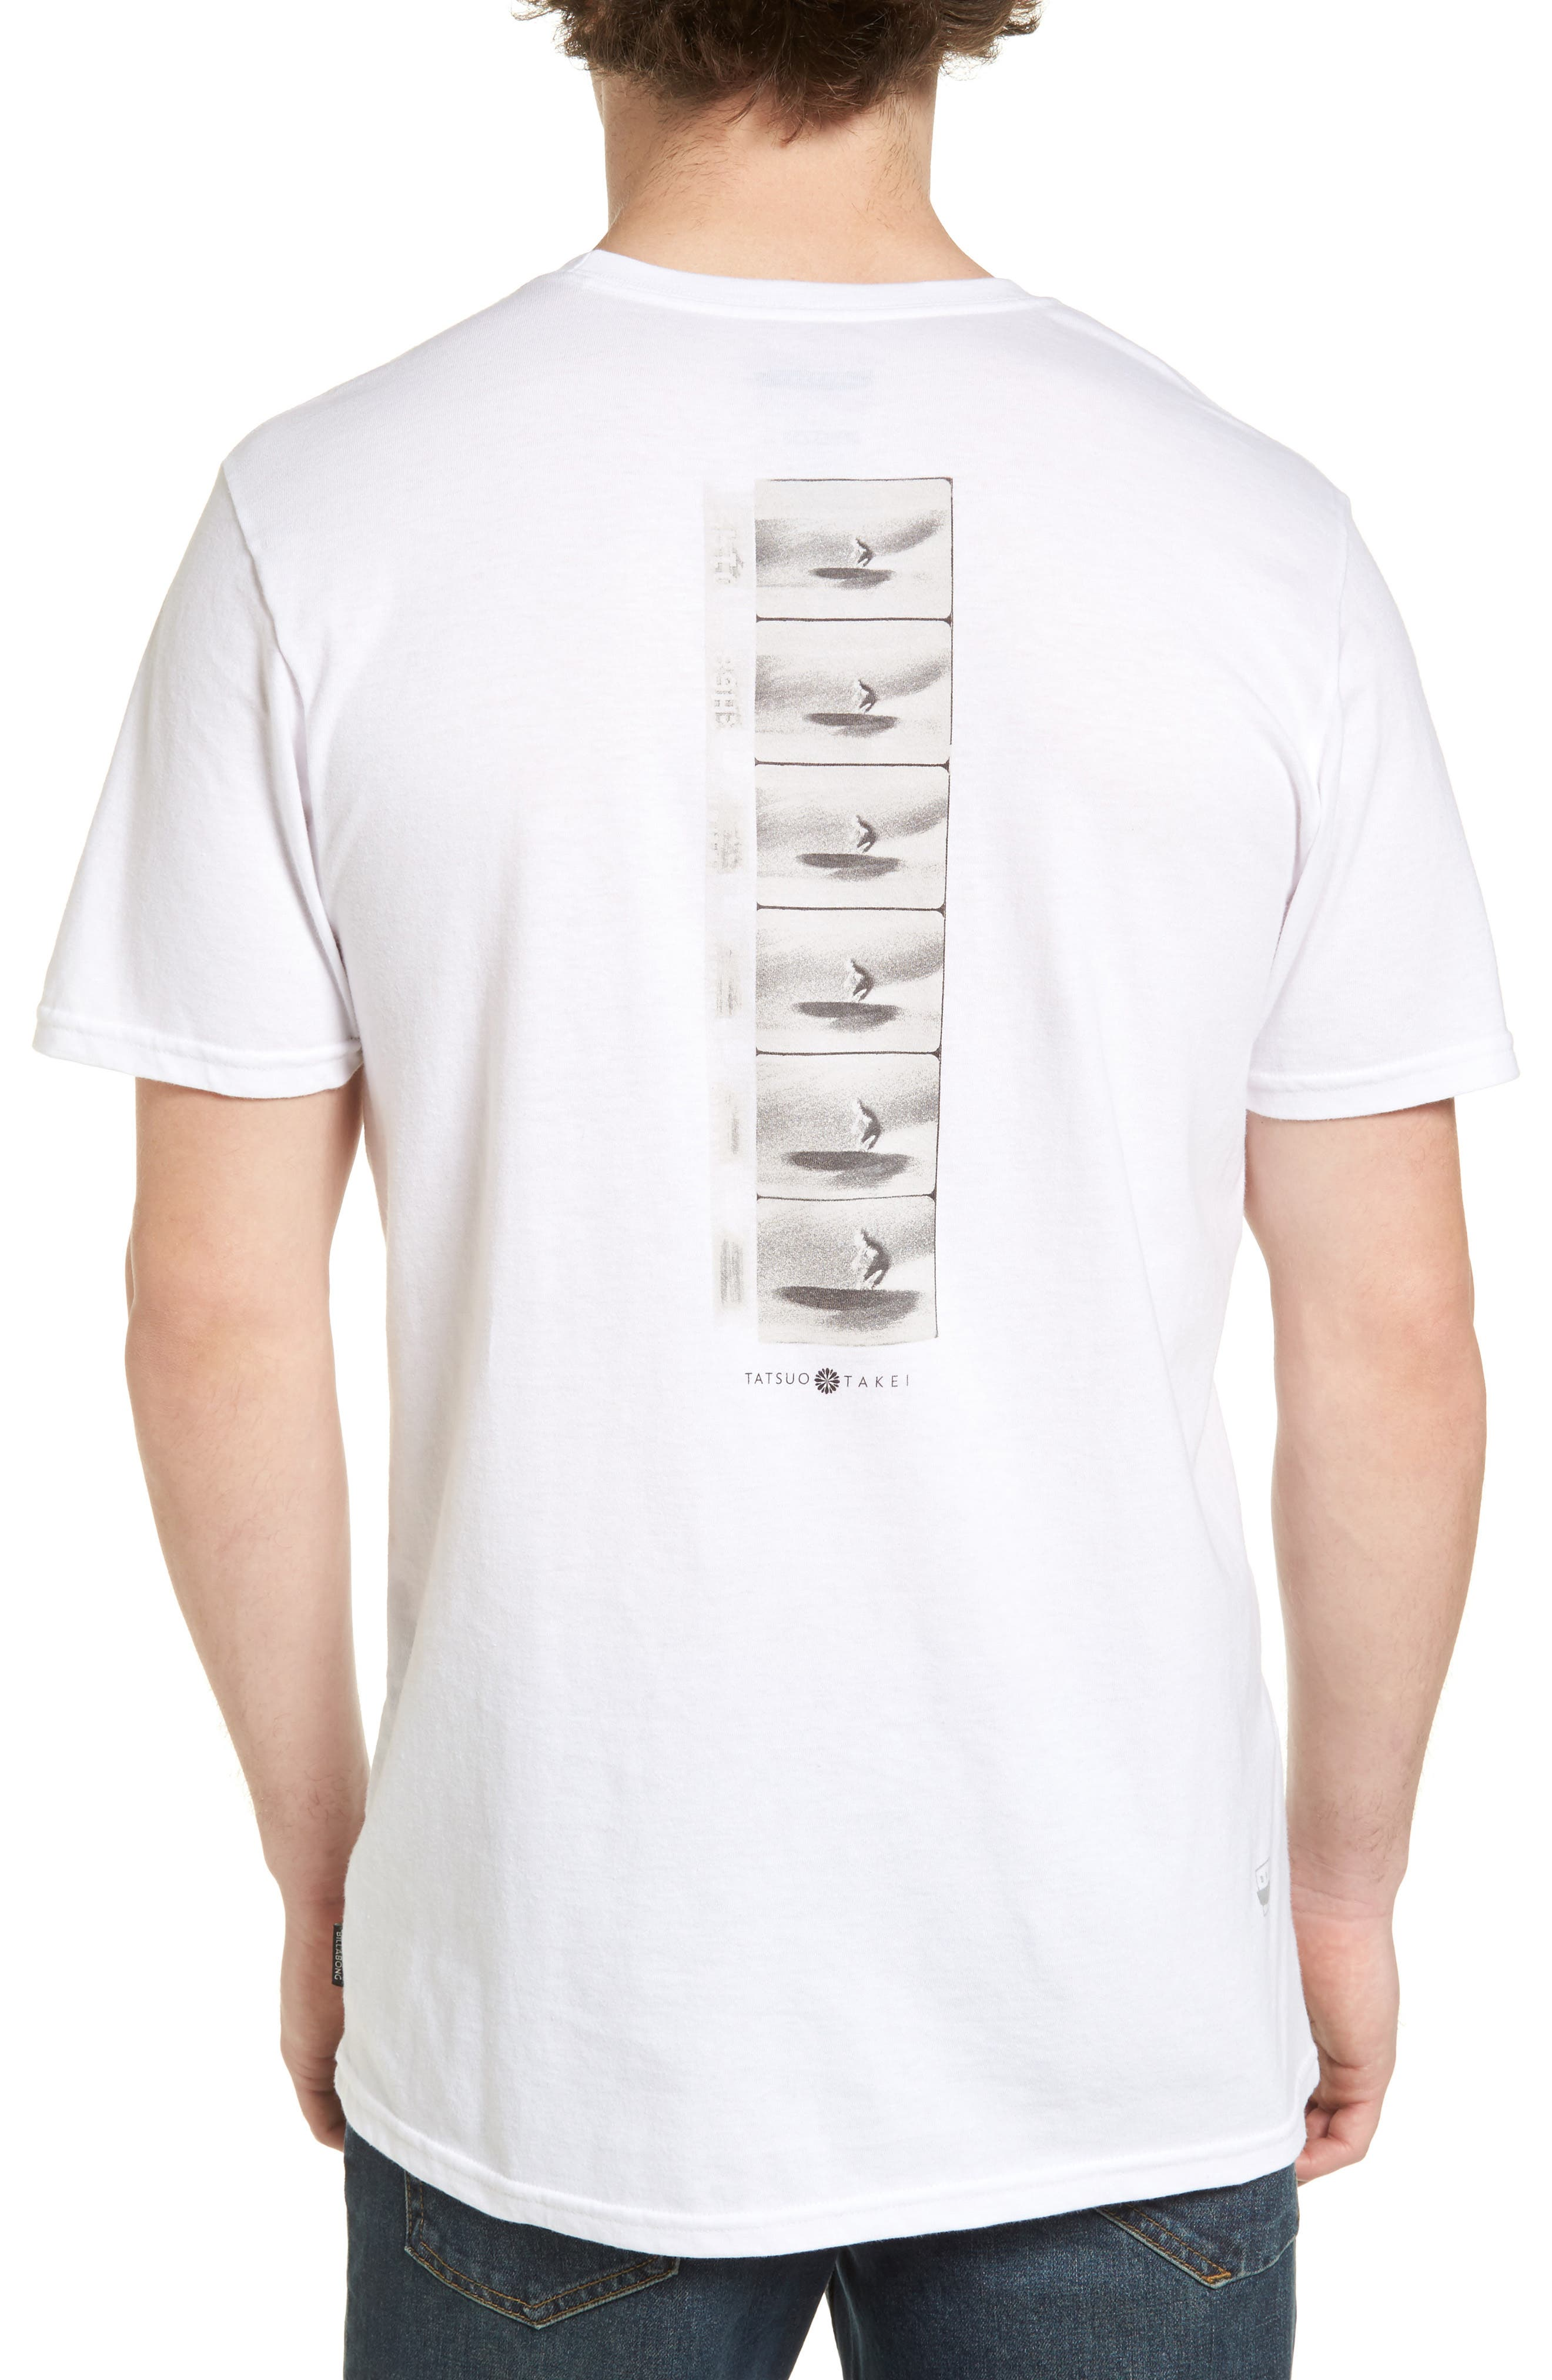 Sequence T-Shirt,                             Alternate thumbnail 2, color,                             100